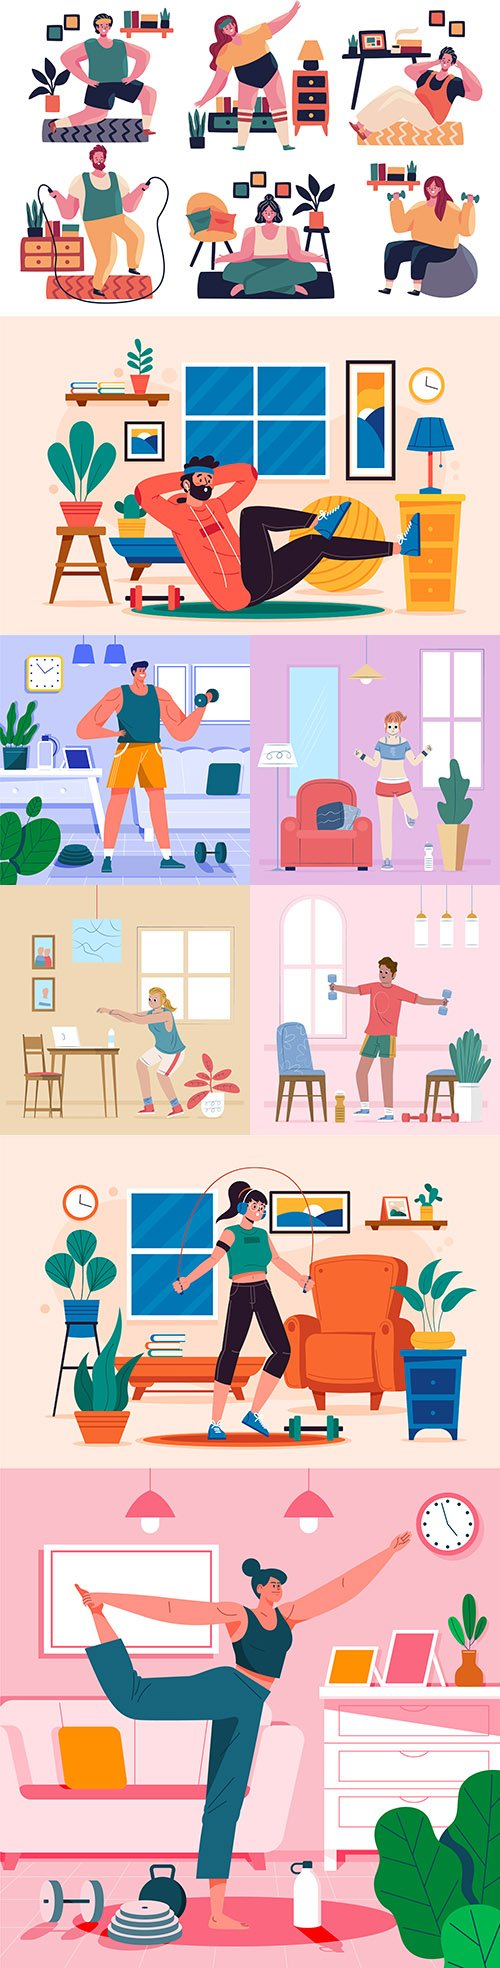 Teaching and sports at home concept illustrations